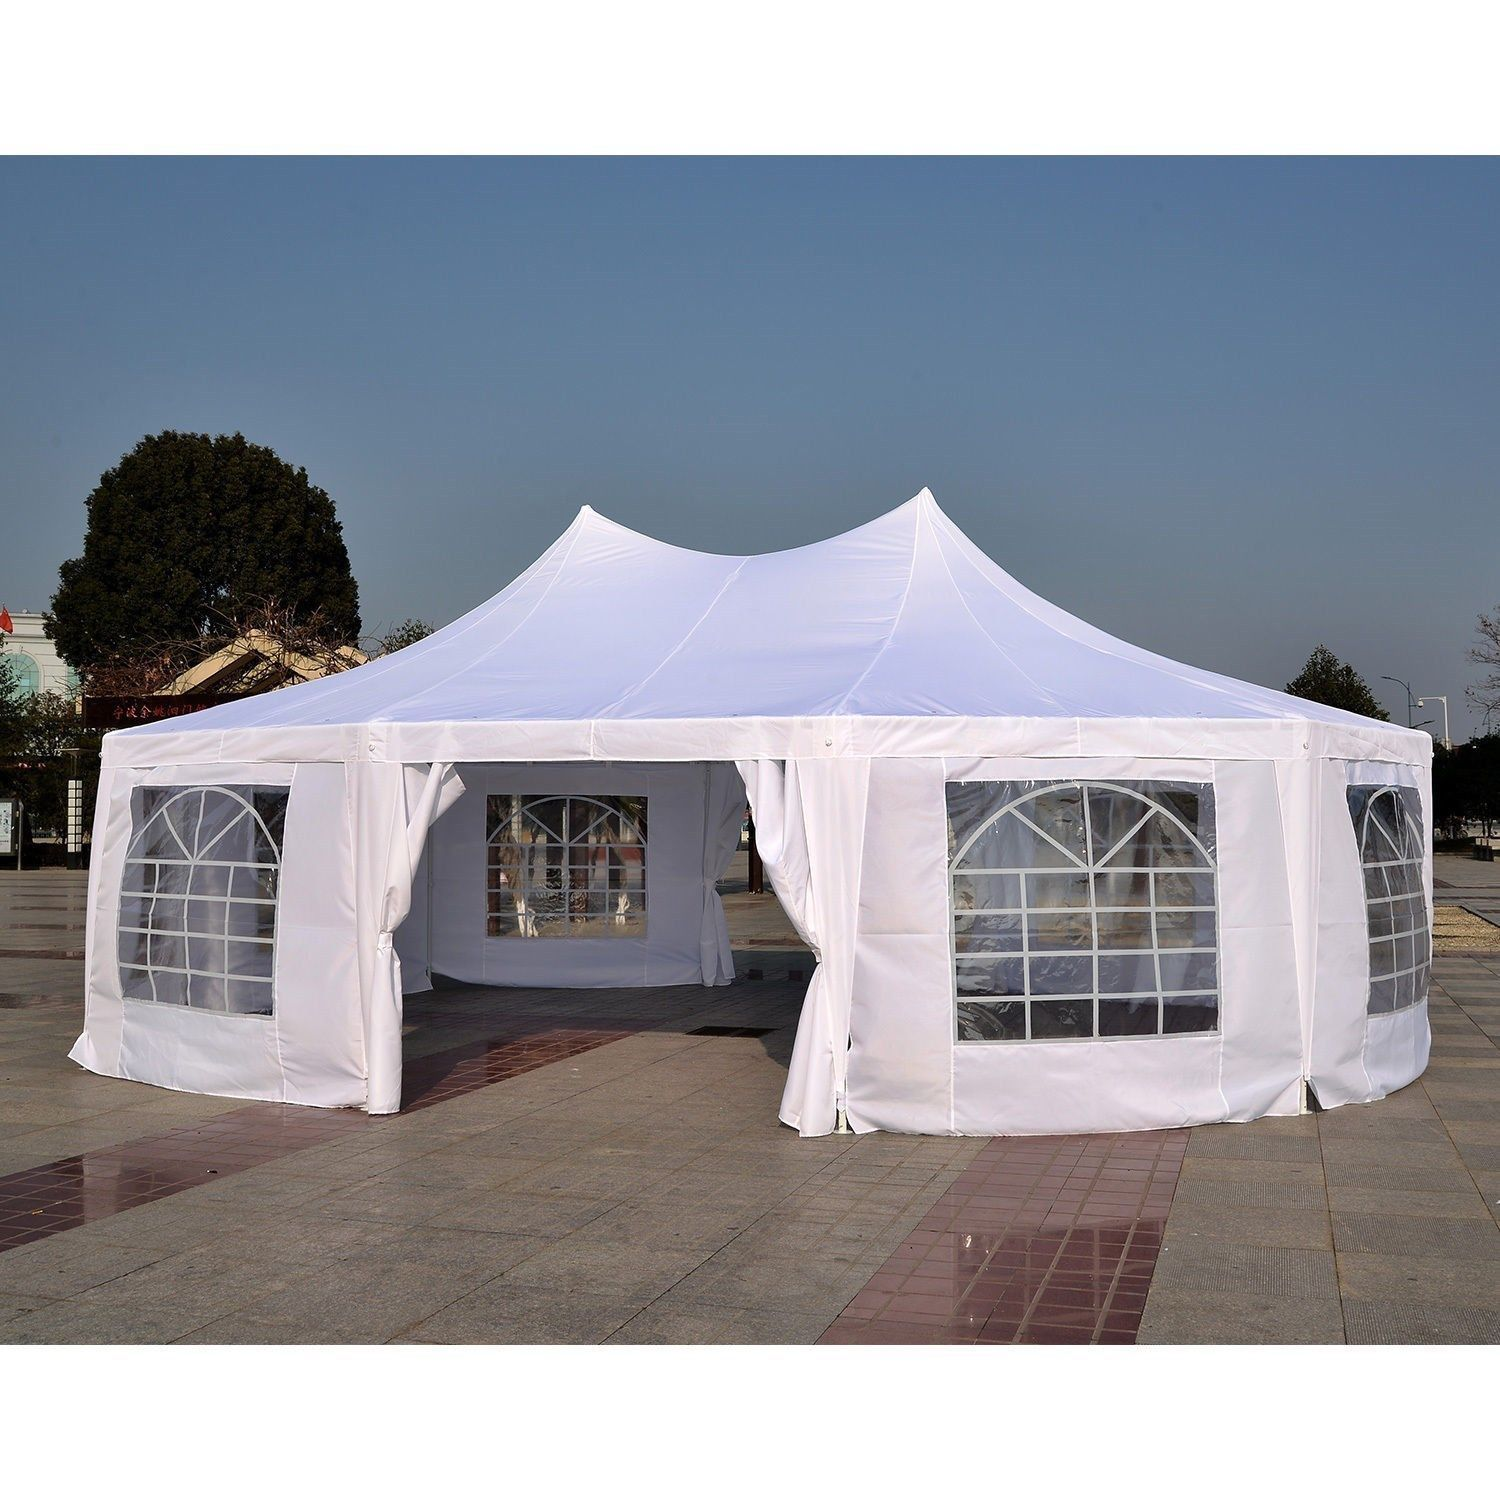 29 x 21 heavy duty party tent canopy gazebo standard or elegant. Black Bedroom Furniture Sets. Home Design Ideas